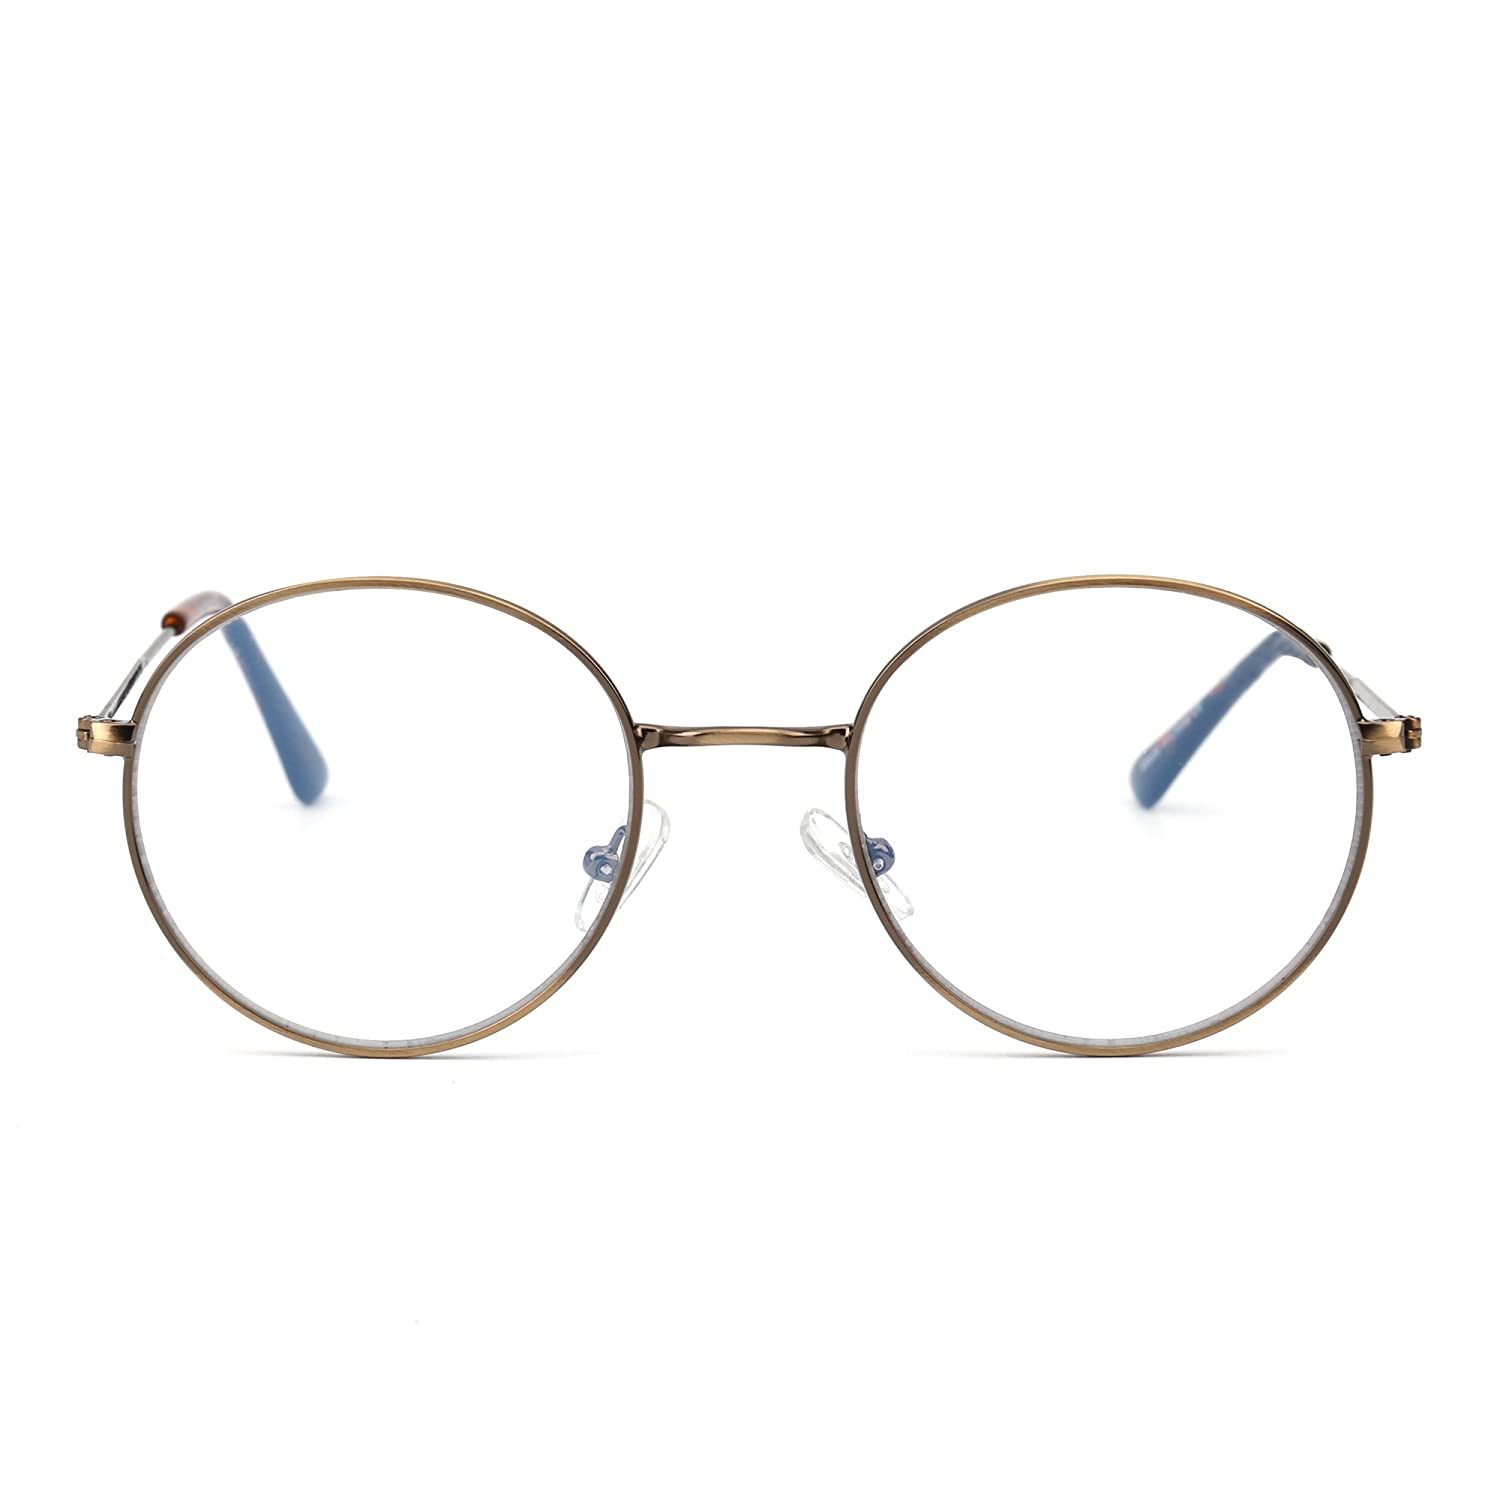 fdfdbc1e95f9 Amazon.com  Retro Round Computer Reading Glasses Metal Circle Frame Gaming  Eyeglasses Anti Blue Light Lens for Digital Screens UV400 Protection ...